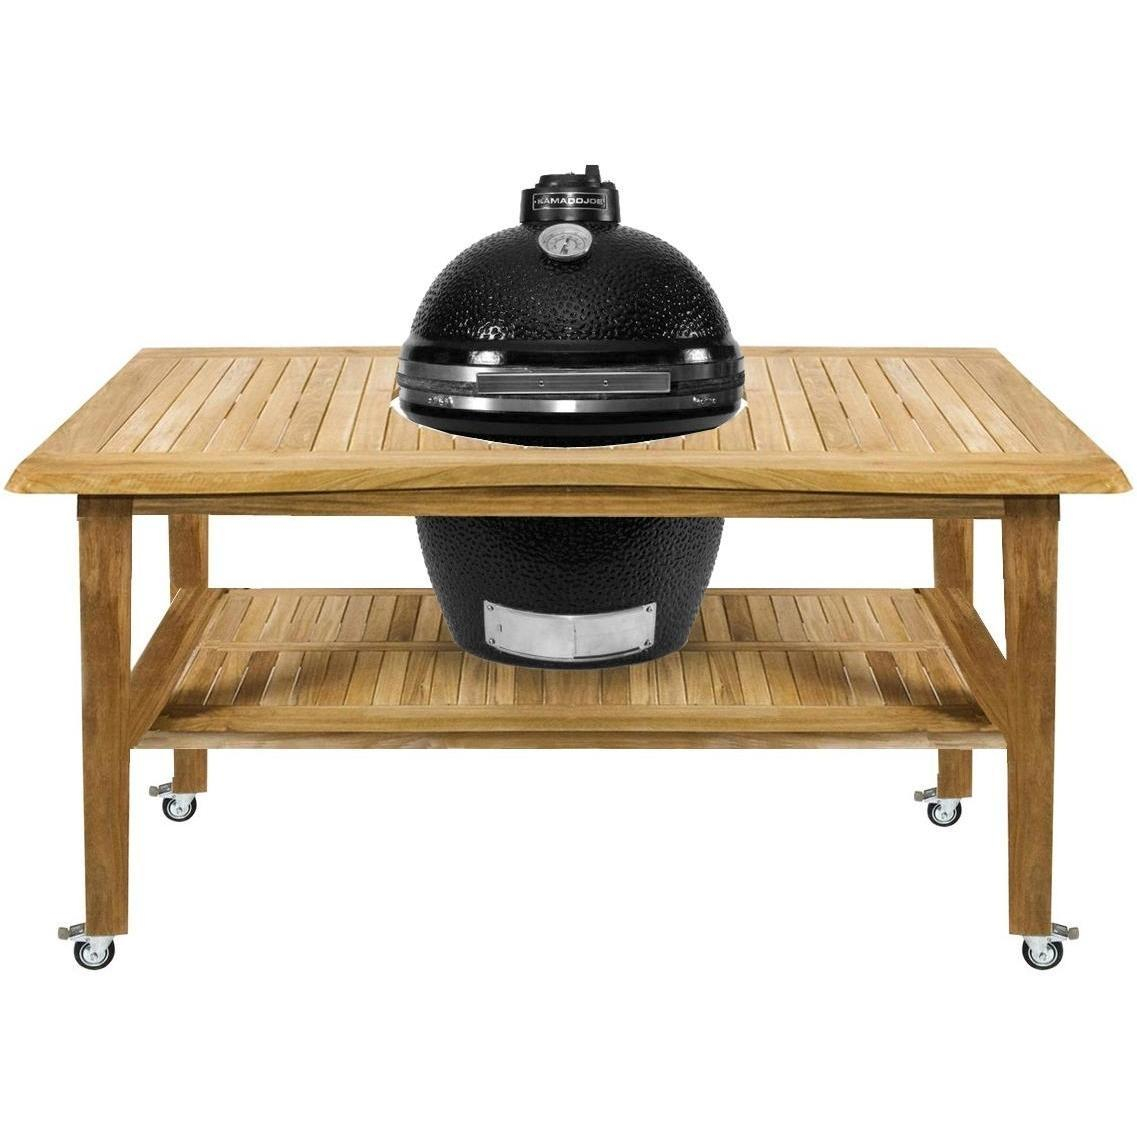 Kamado Joe Classic Ceramic Grill With Stainless Bands On